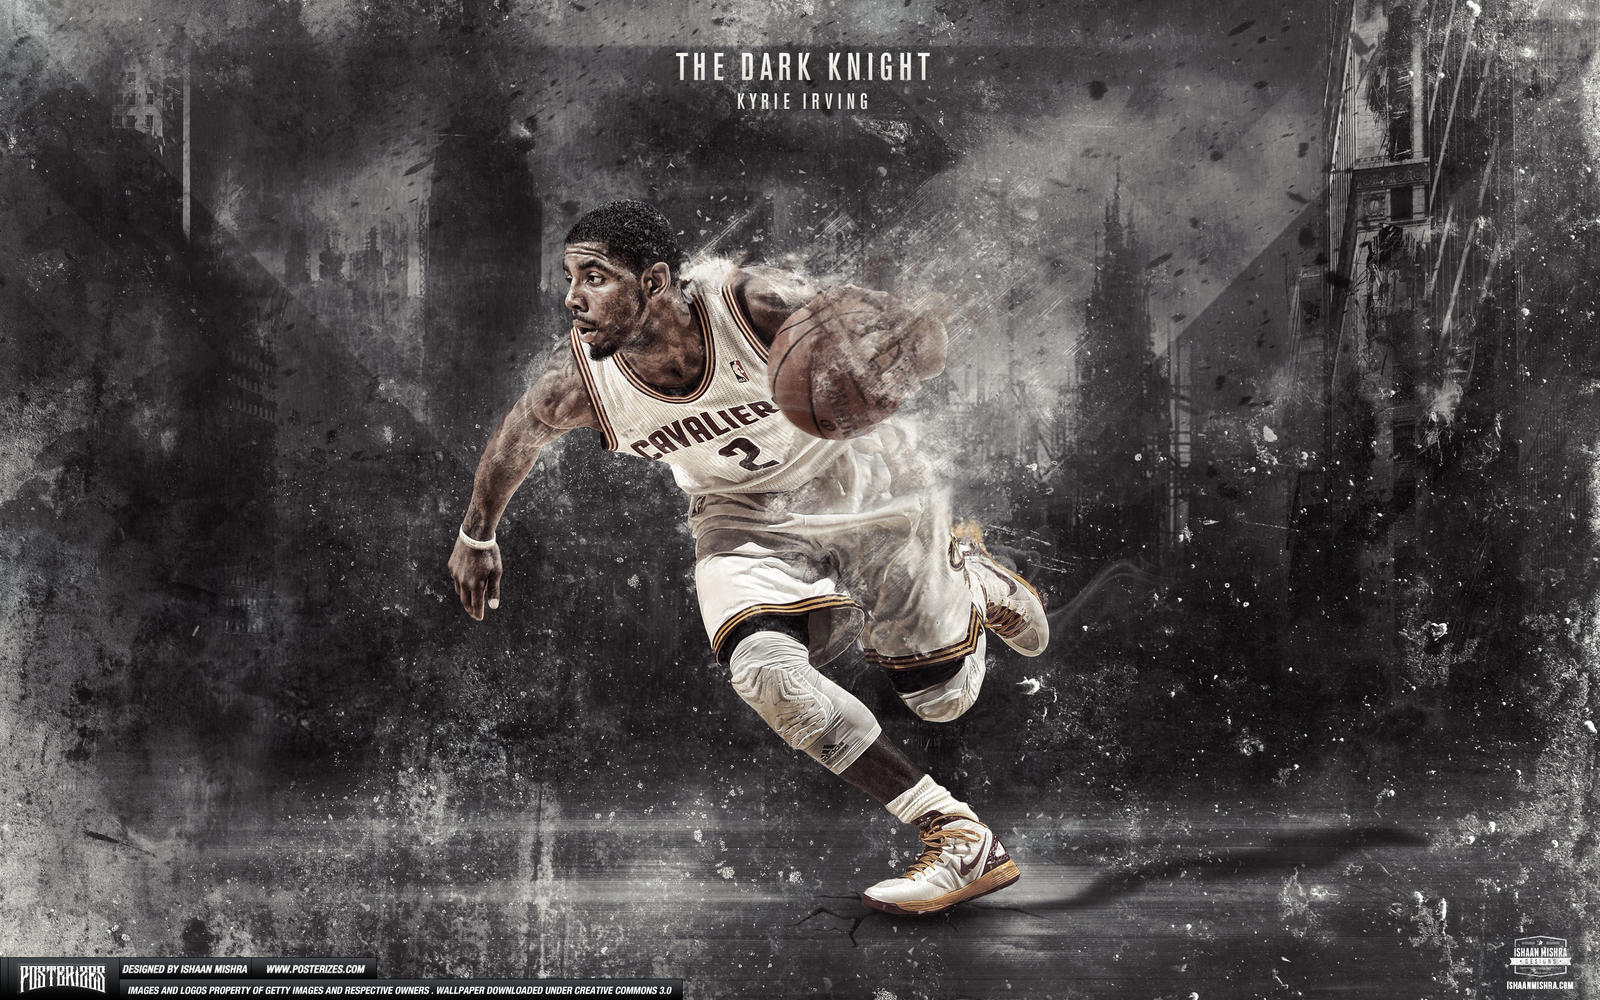 Kyrie Irving Basketball Shoes Amazon